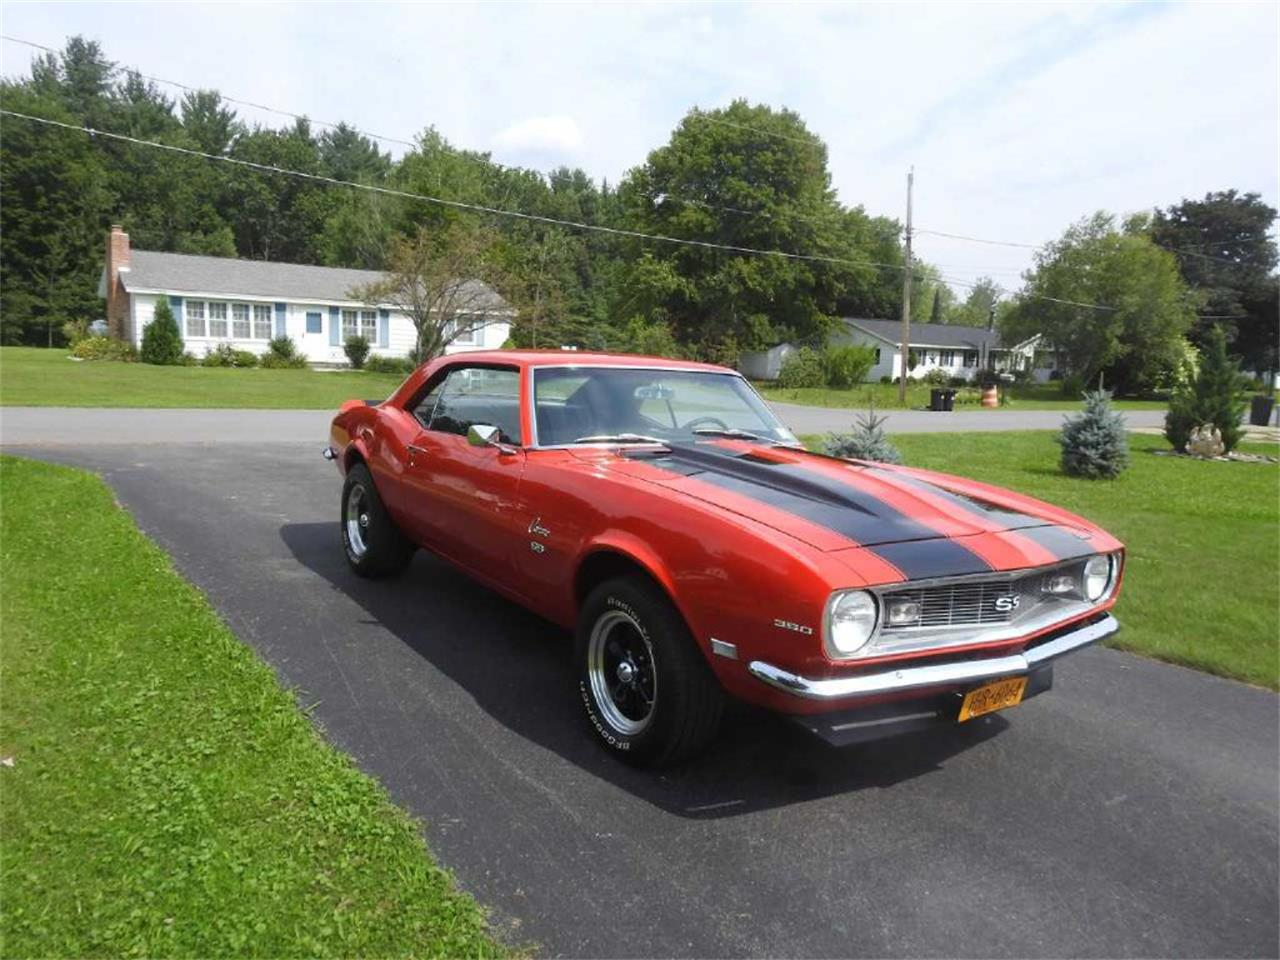 for sale 1968 chevrolet camaro in west pittston, pennsylvania cars - pittston, pa at geebo